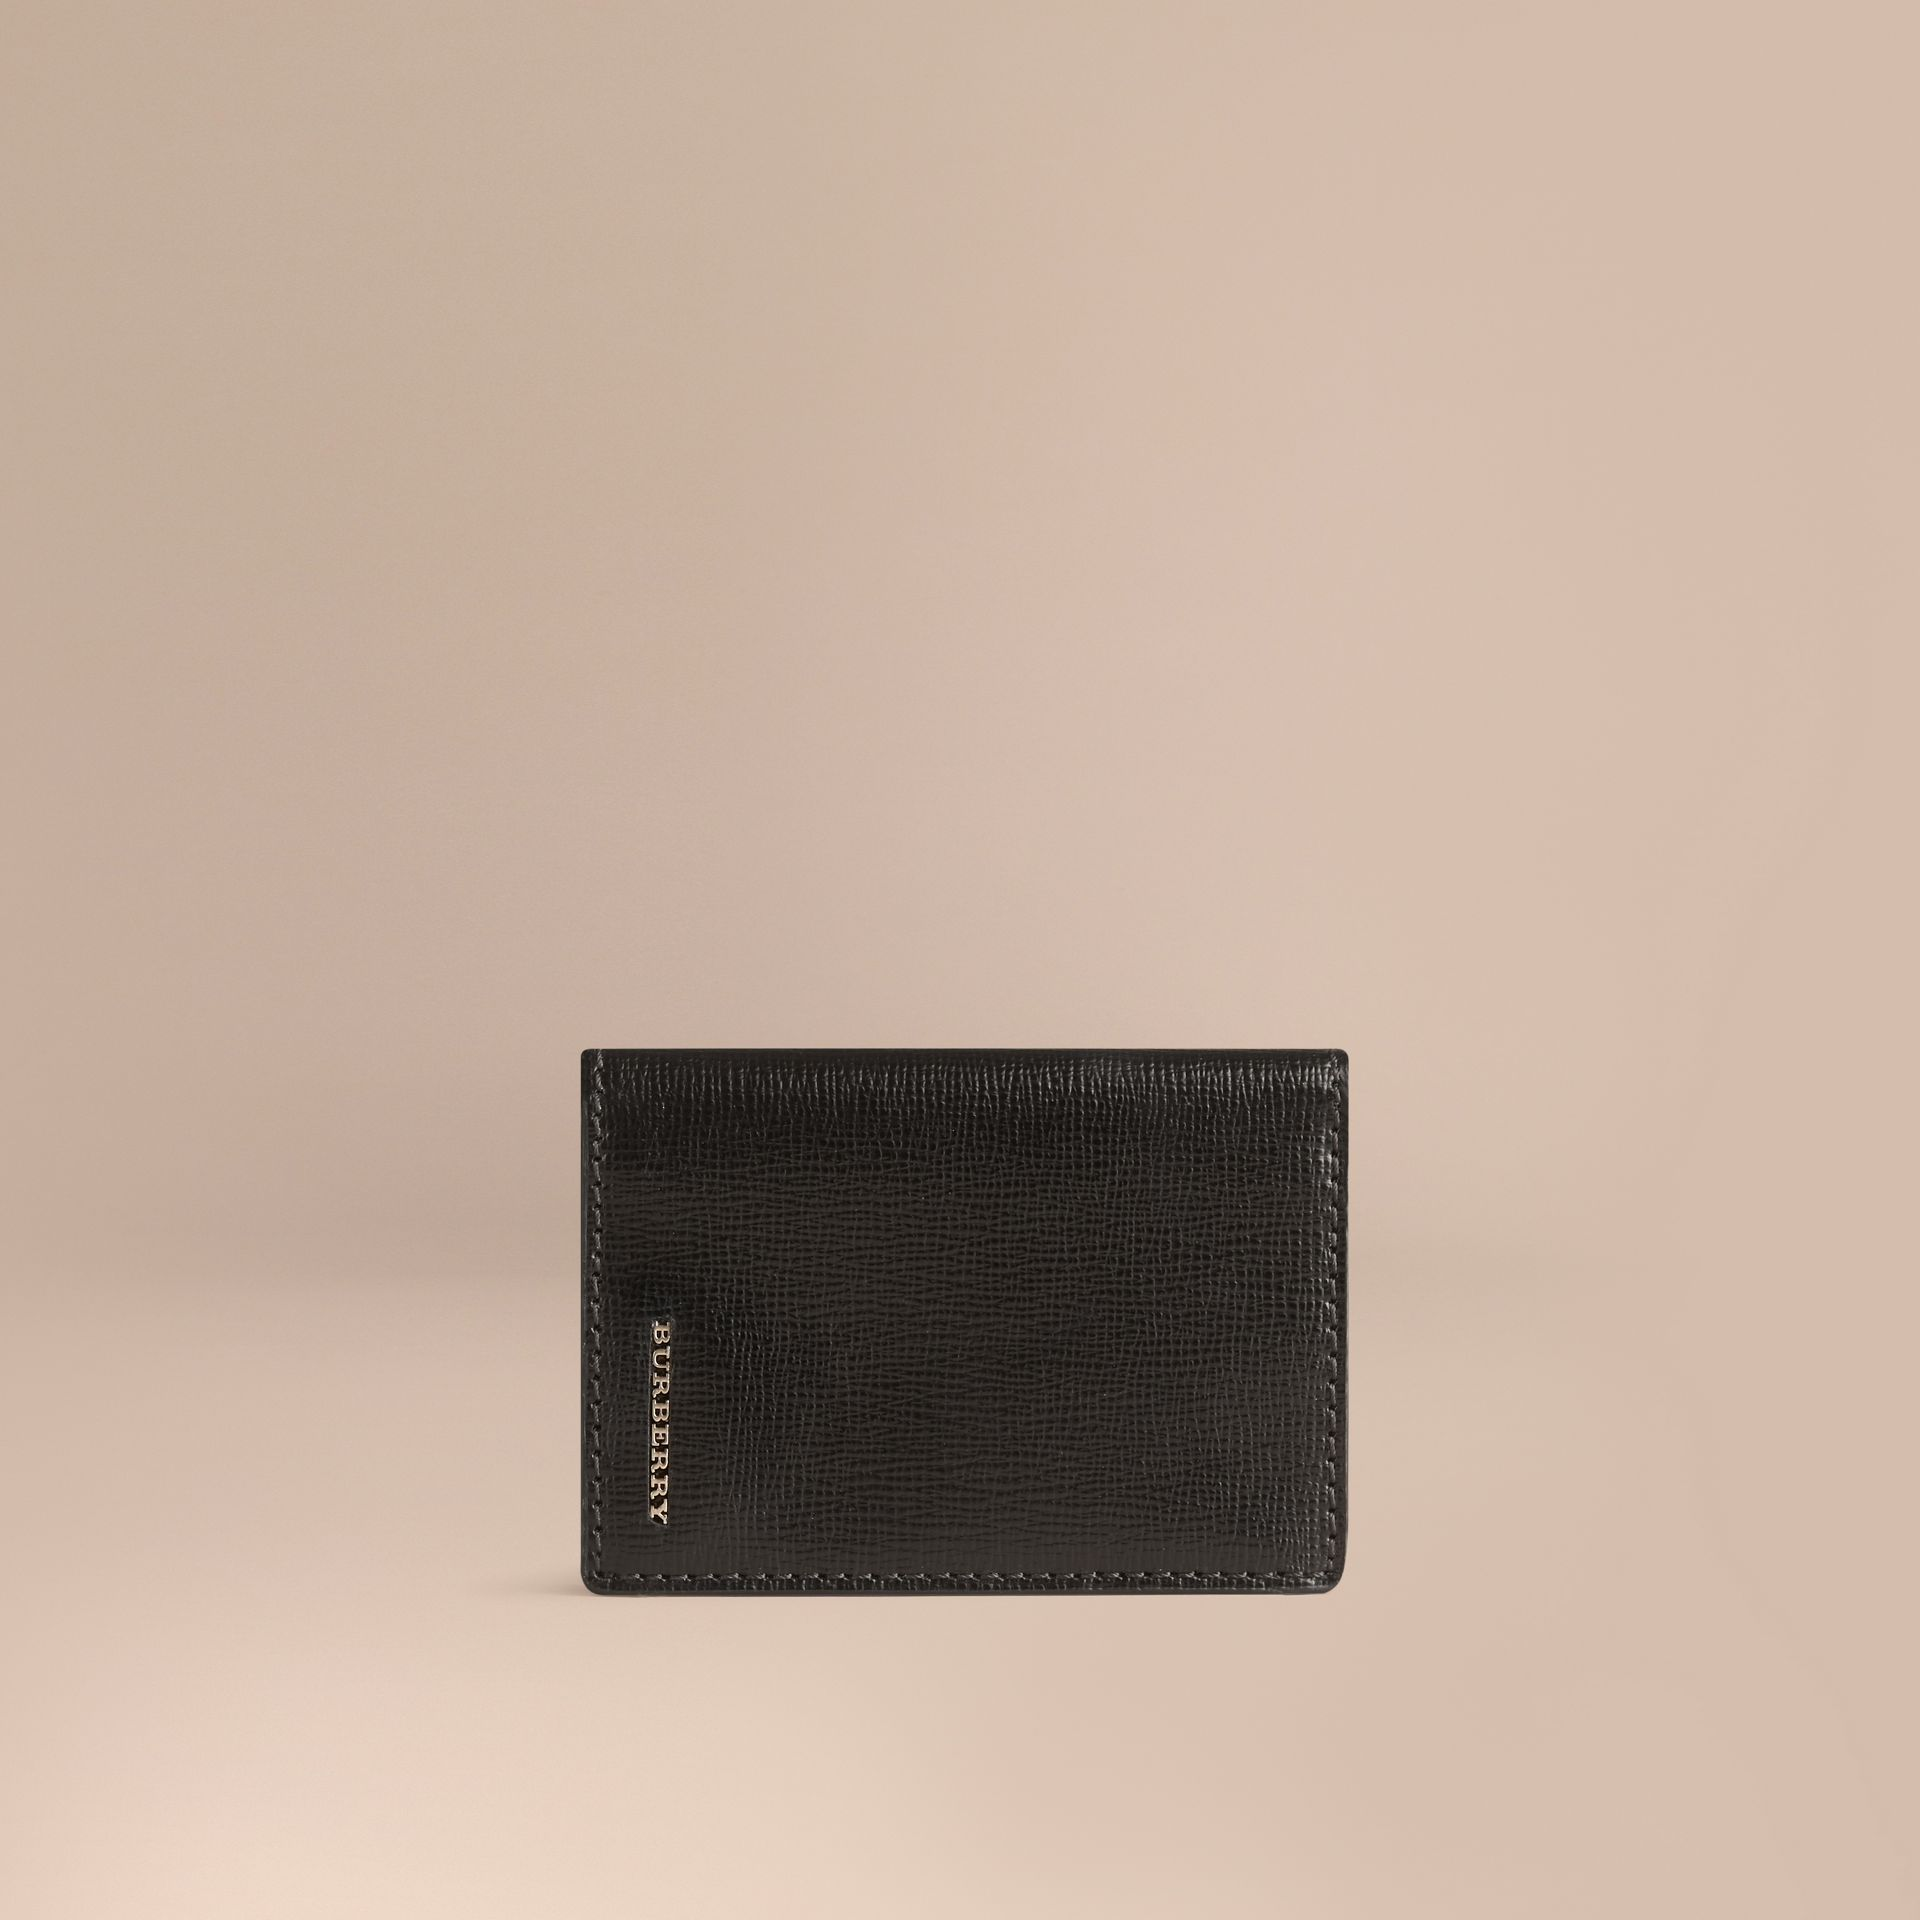 Black London Leather Folding Card Case Black - gallery image 1